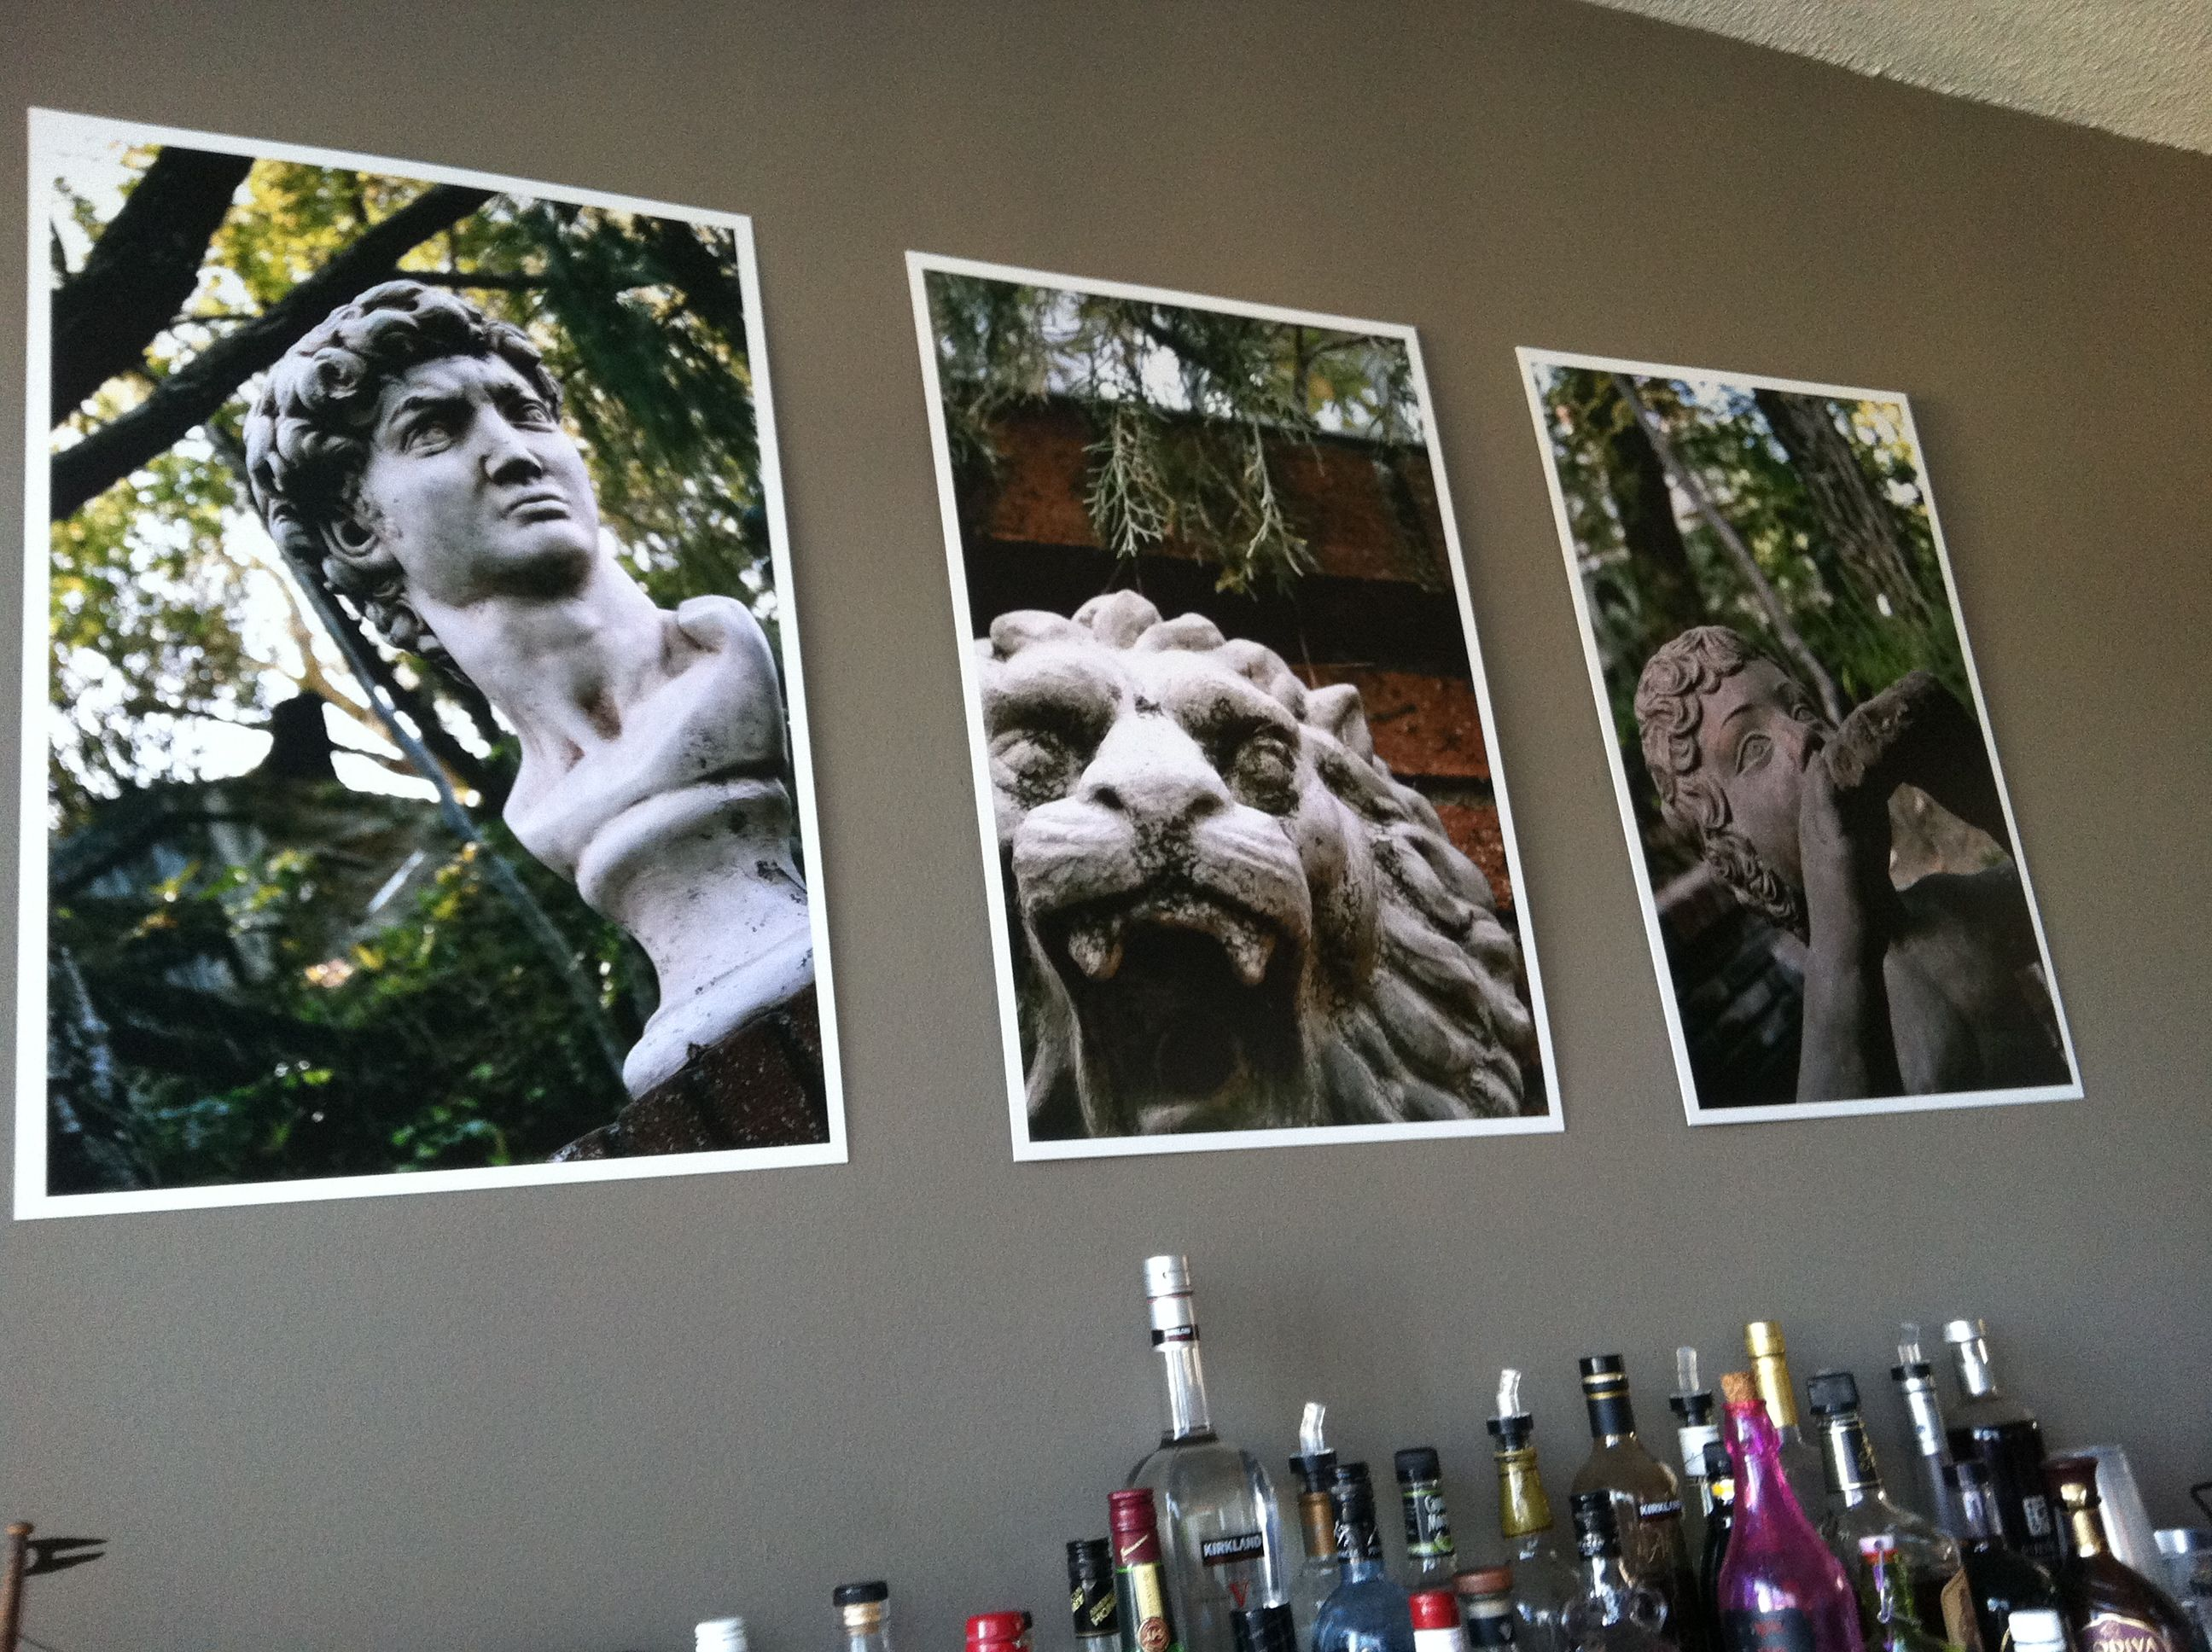 Hubby S Photography On Poster Board From Costco Above The Bar Poster Prints Poster Prints